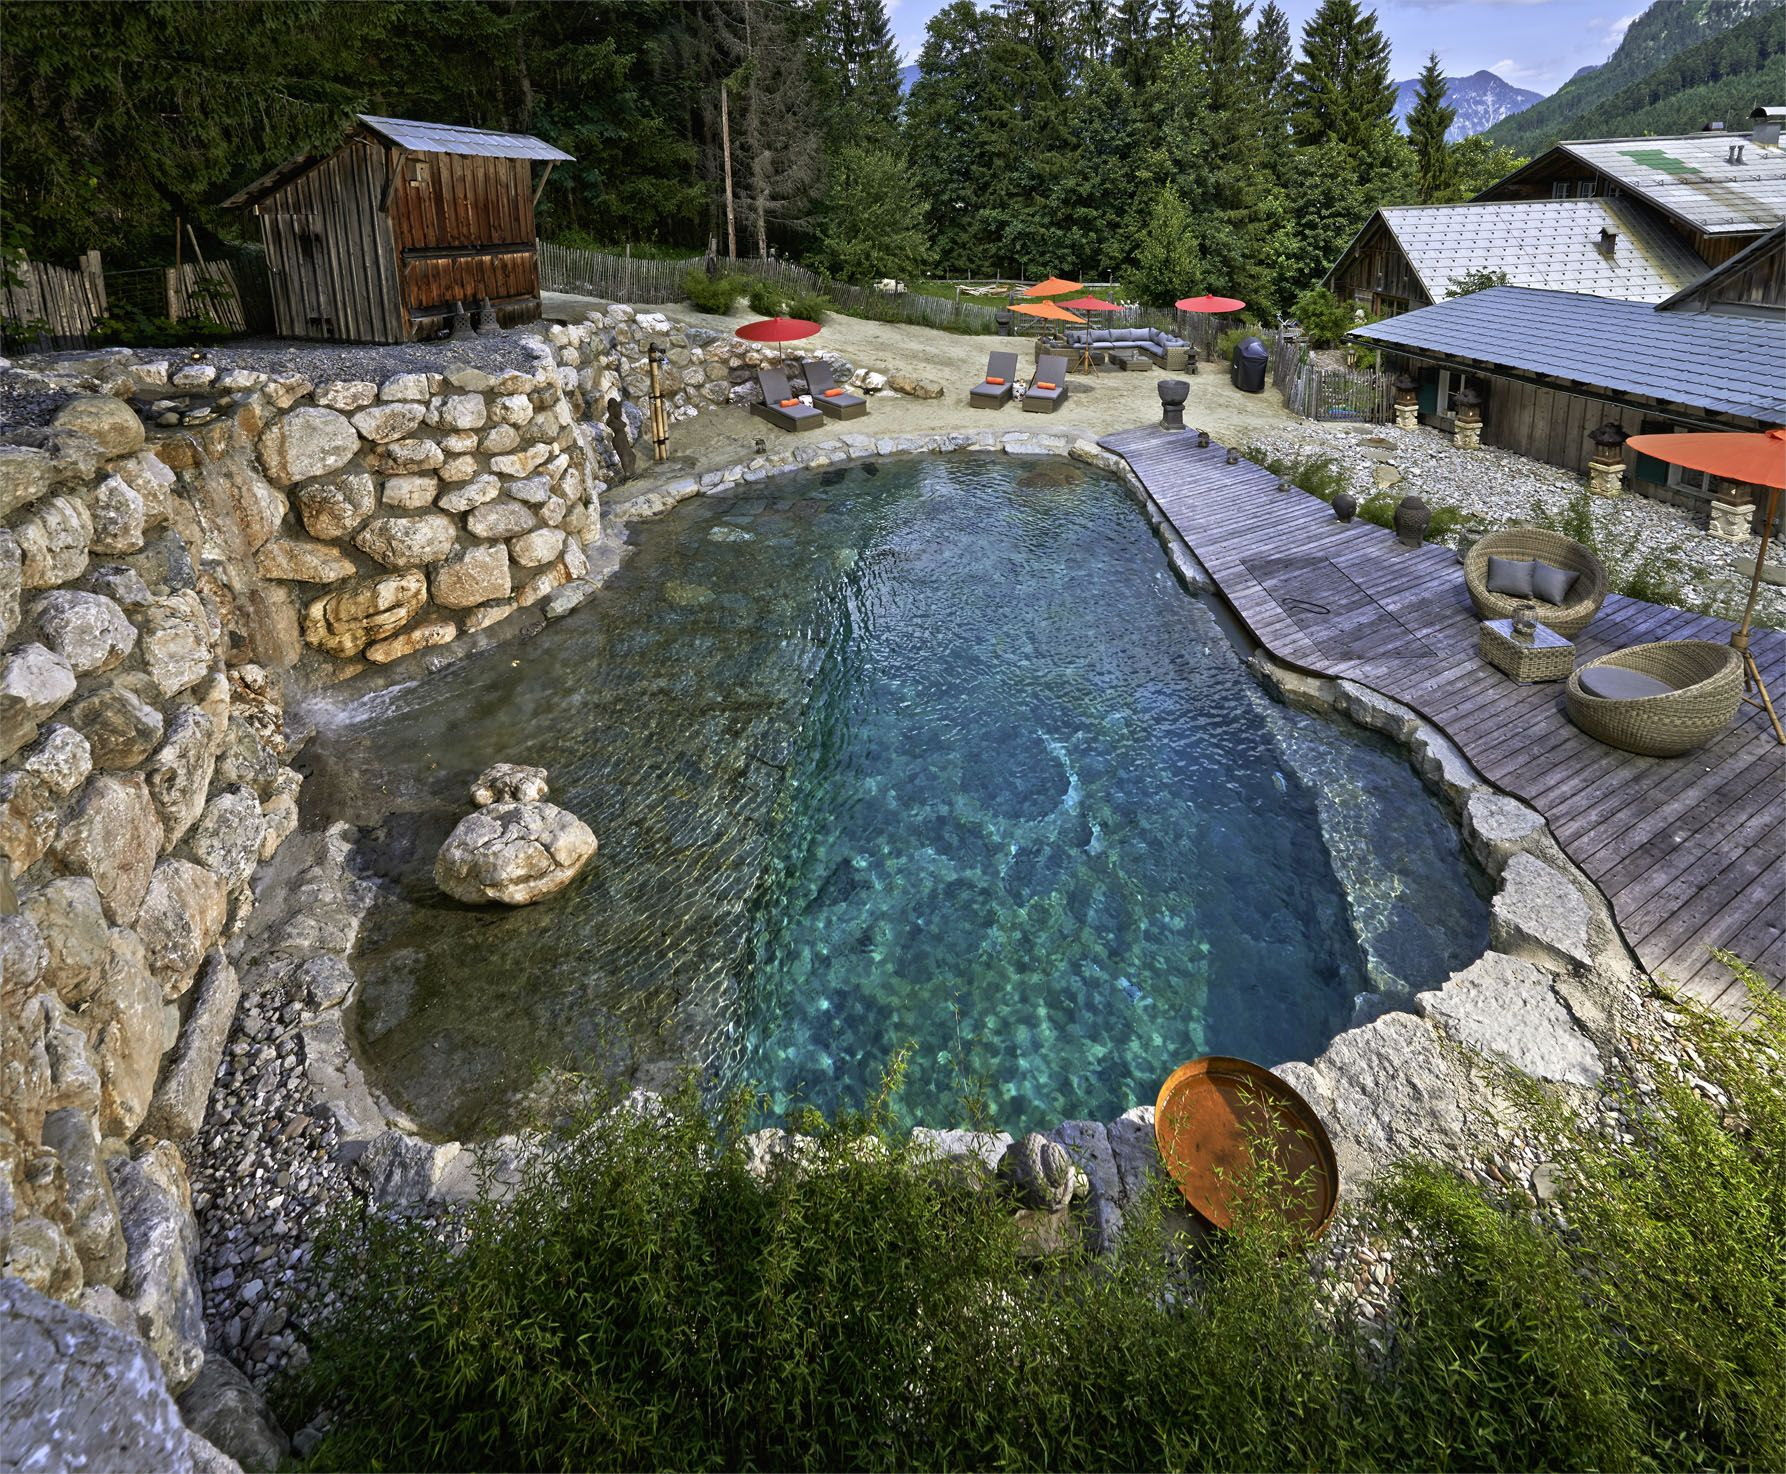 pool selber bauen beton - Google-Suche | Natural swimming pools ...